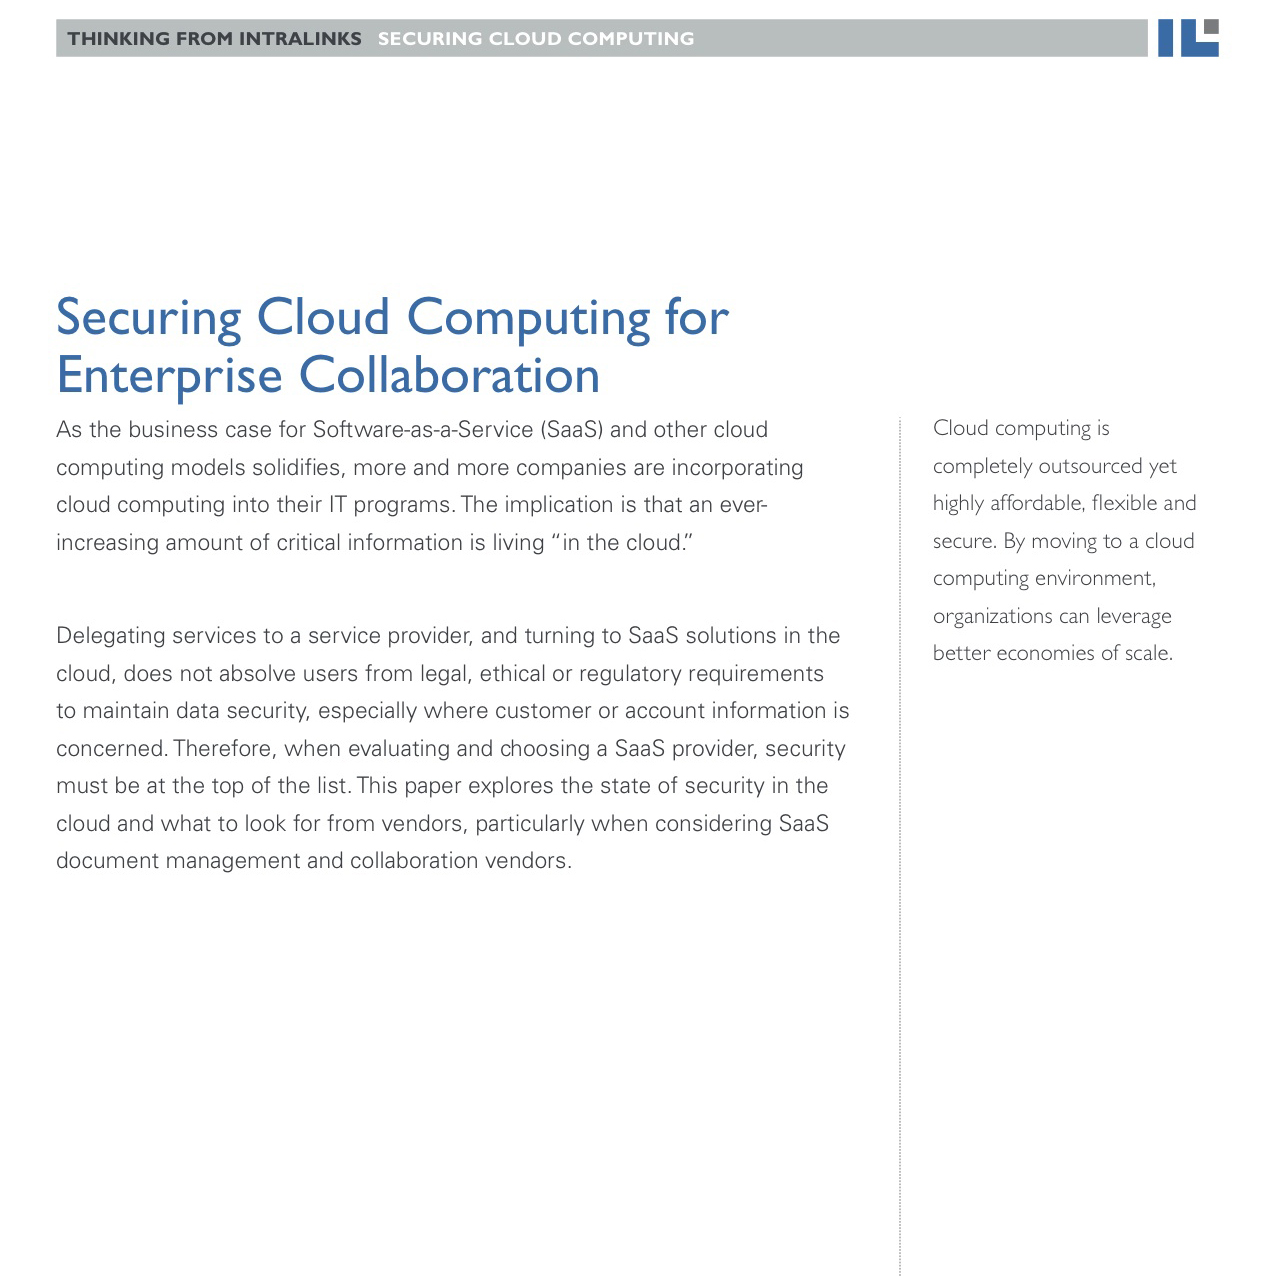 Intralinks white paper: Securing Cloud Computing for Enterprise Collaboration